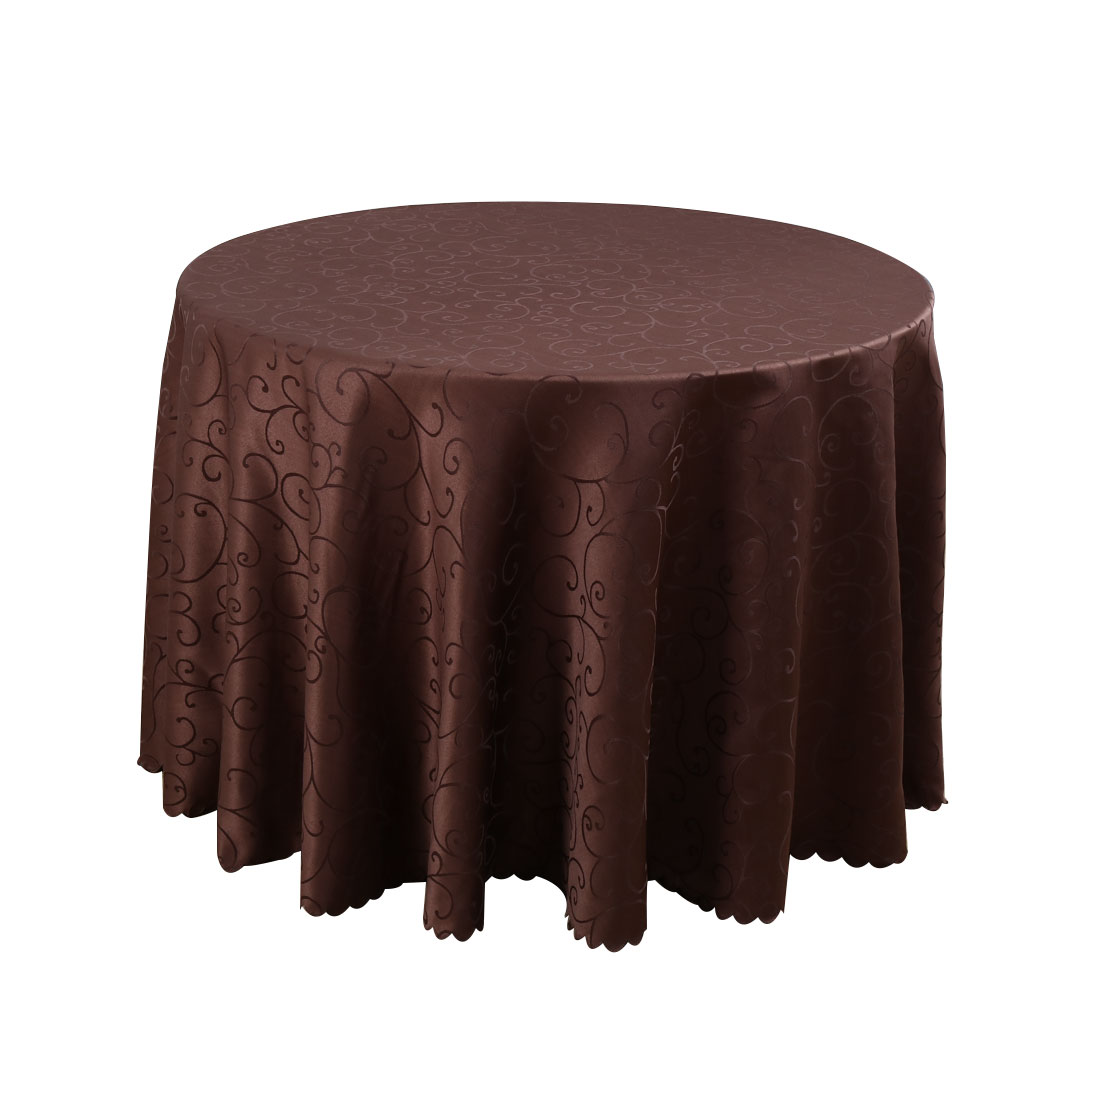 Hotel Restaurant Polyester Round Flower Pattern Tablecloth Table Cloth Cover Coffee Color 2.4M Diameter